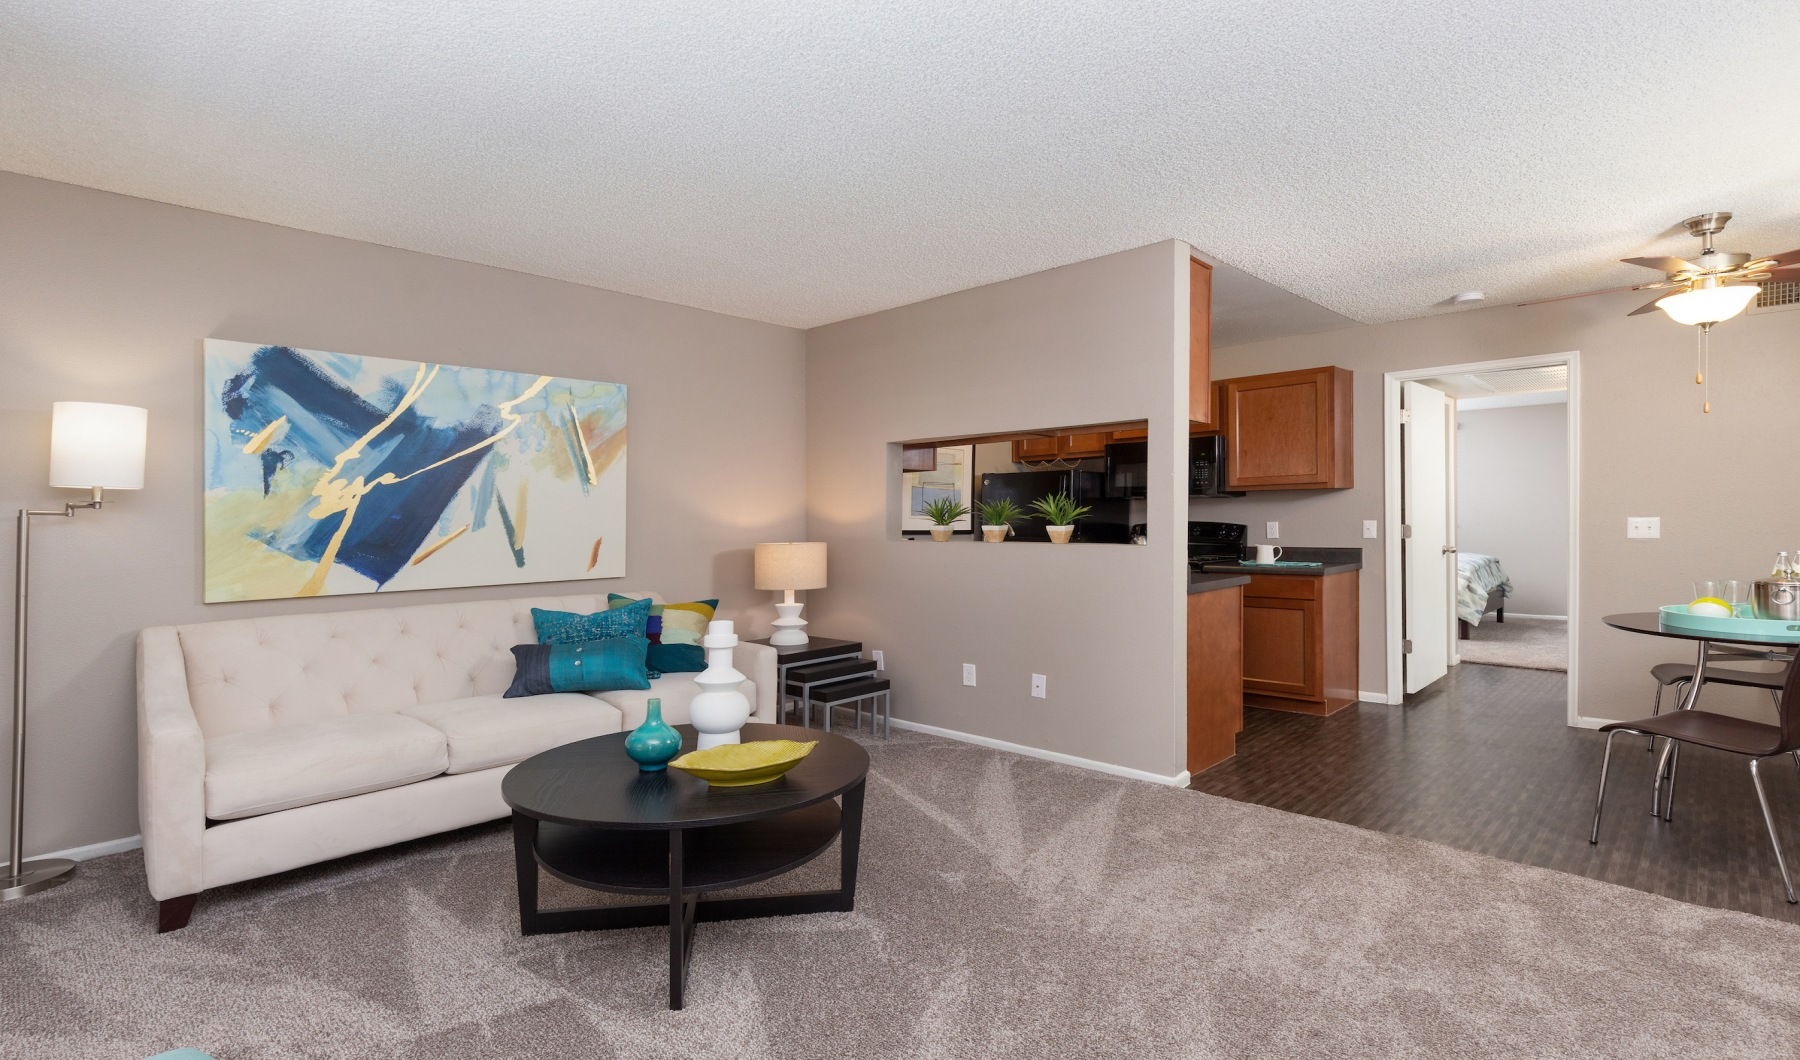 Apartments Located in The Heart of Glendale, AZ